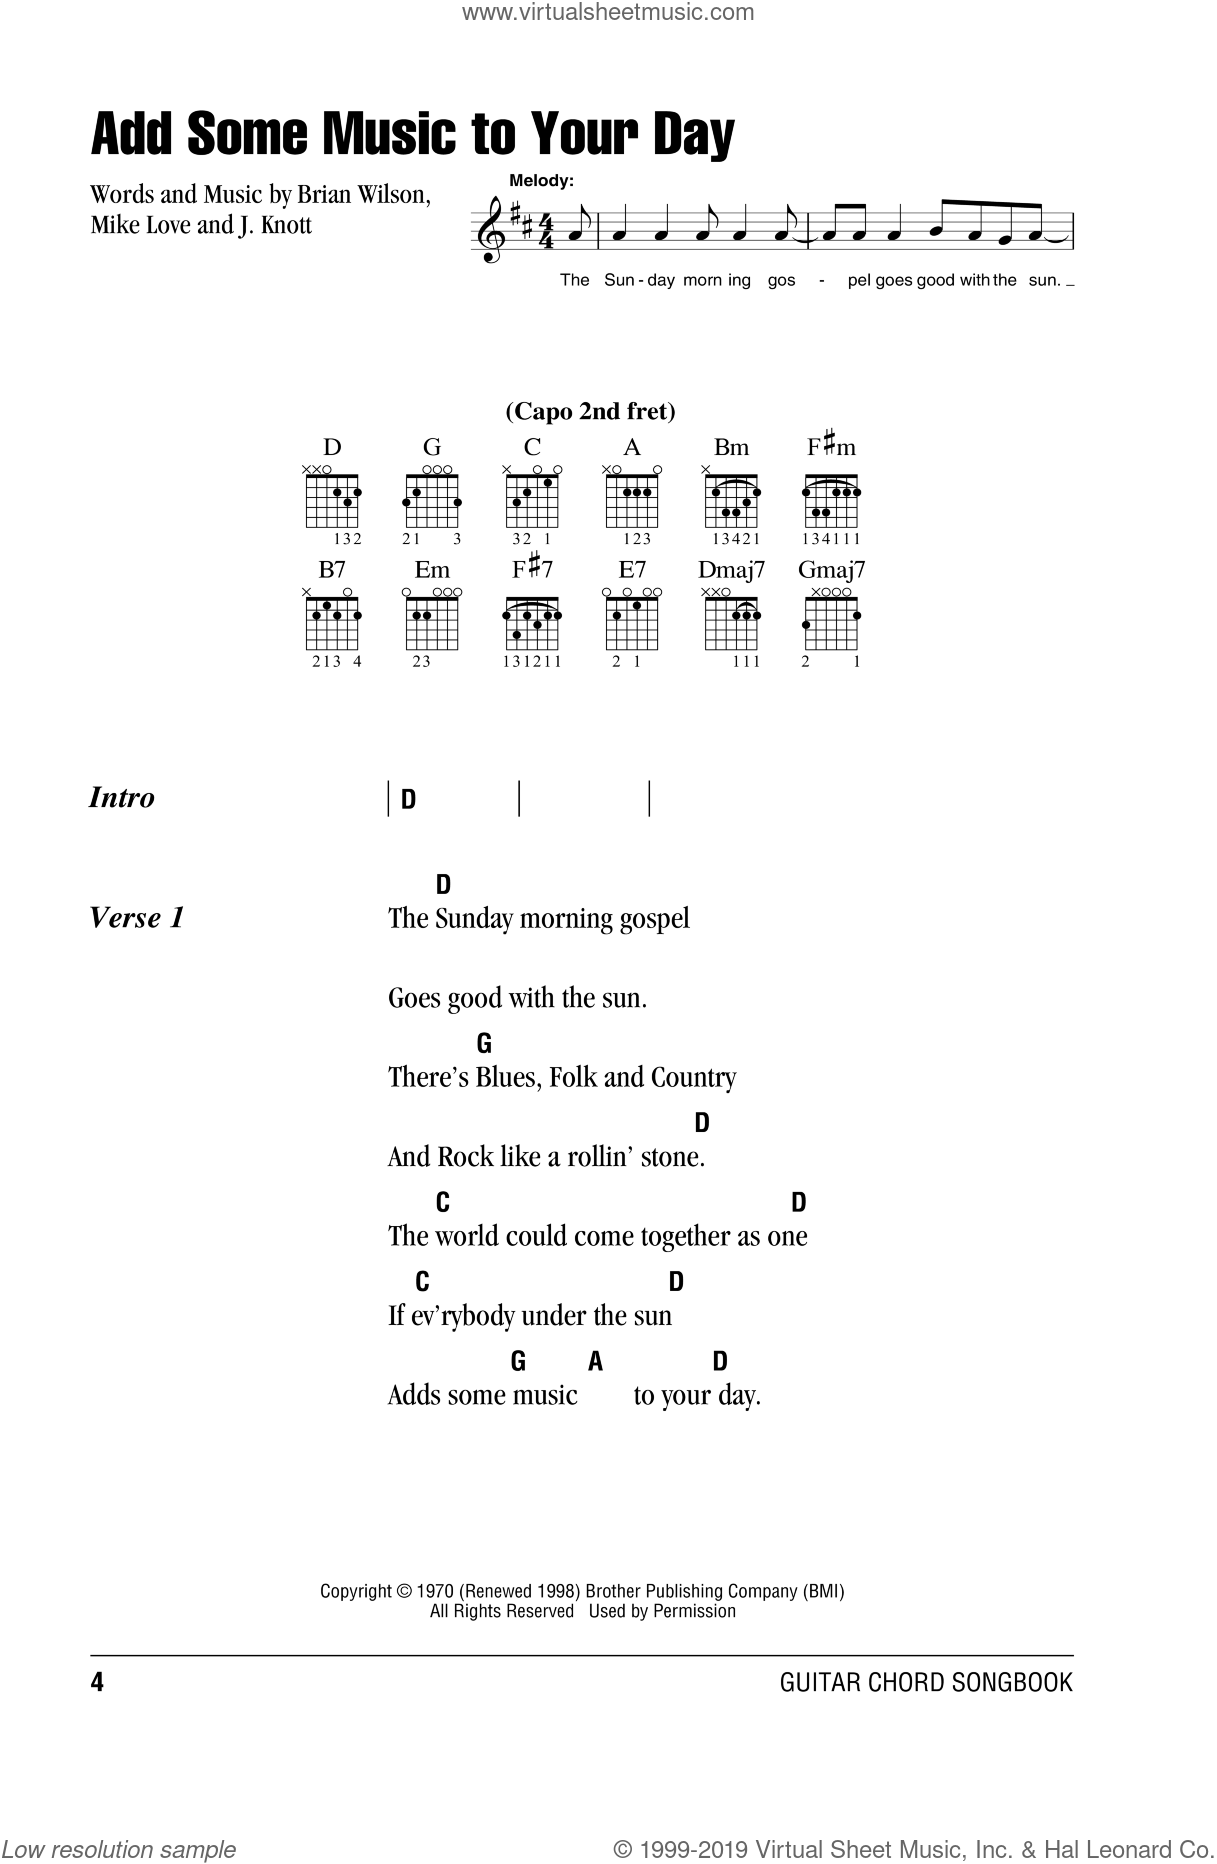 Add Some Music To Your Day sheet music for guitar (chords) by The Beach Boys, Brian Wilson, Joe Knott and Mike Love, intermediate. Score Image Preview.